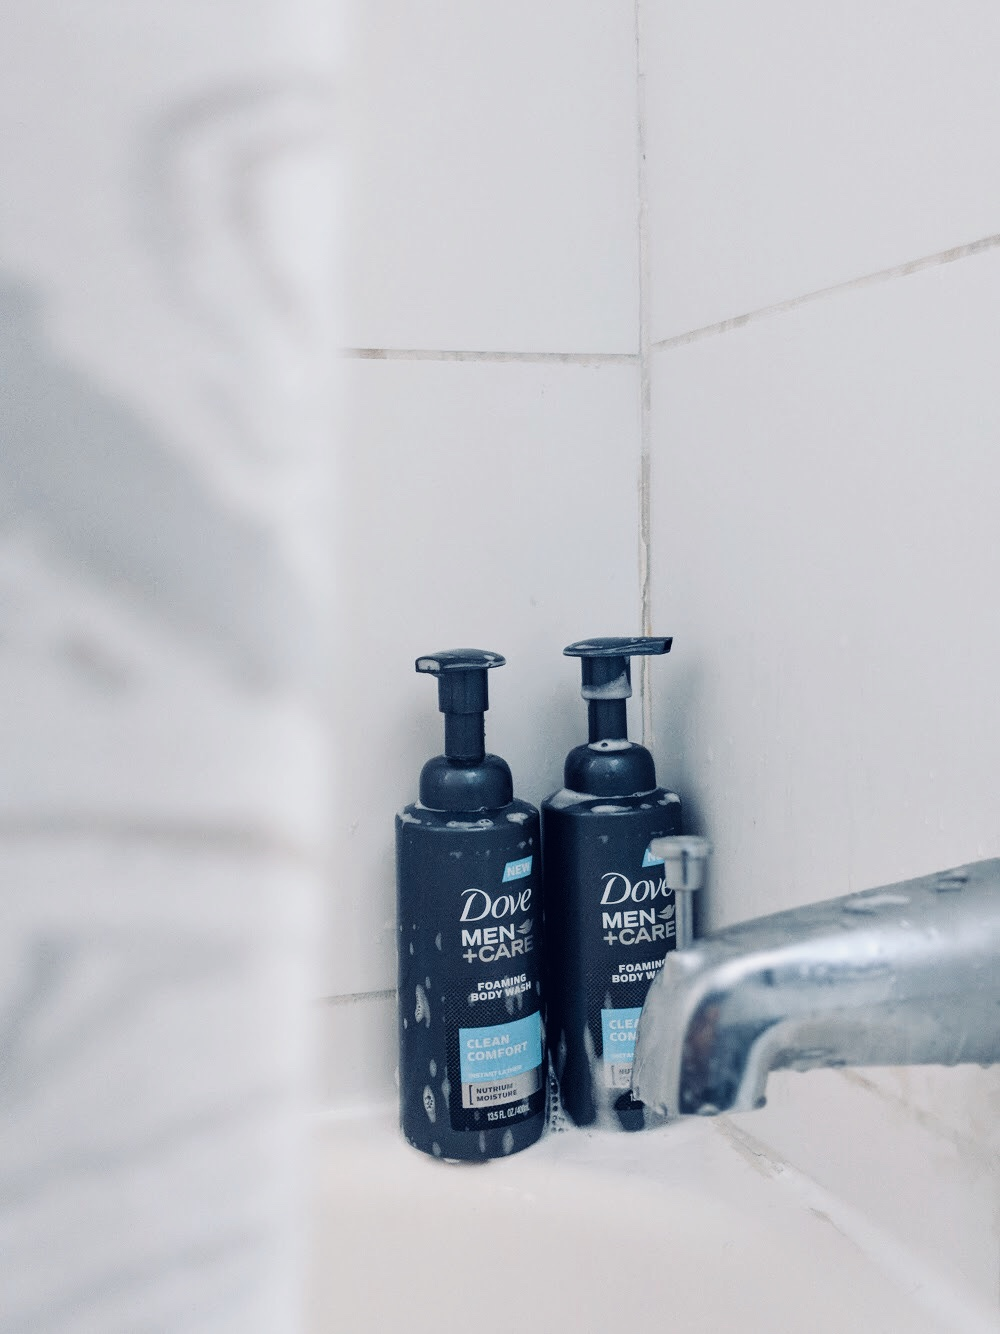 Gents Tested Dove Men Care Clean Comfort Foaming Body Wash Gents Among Men